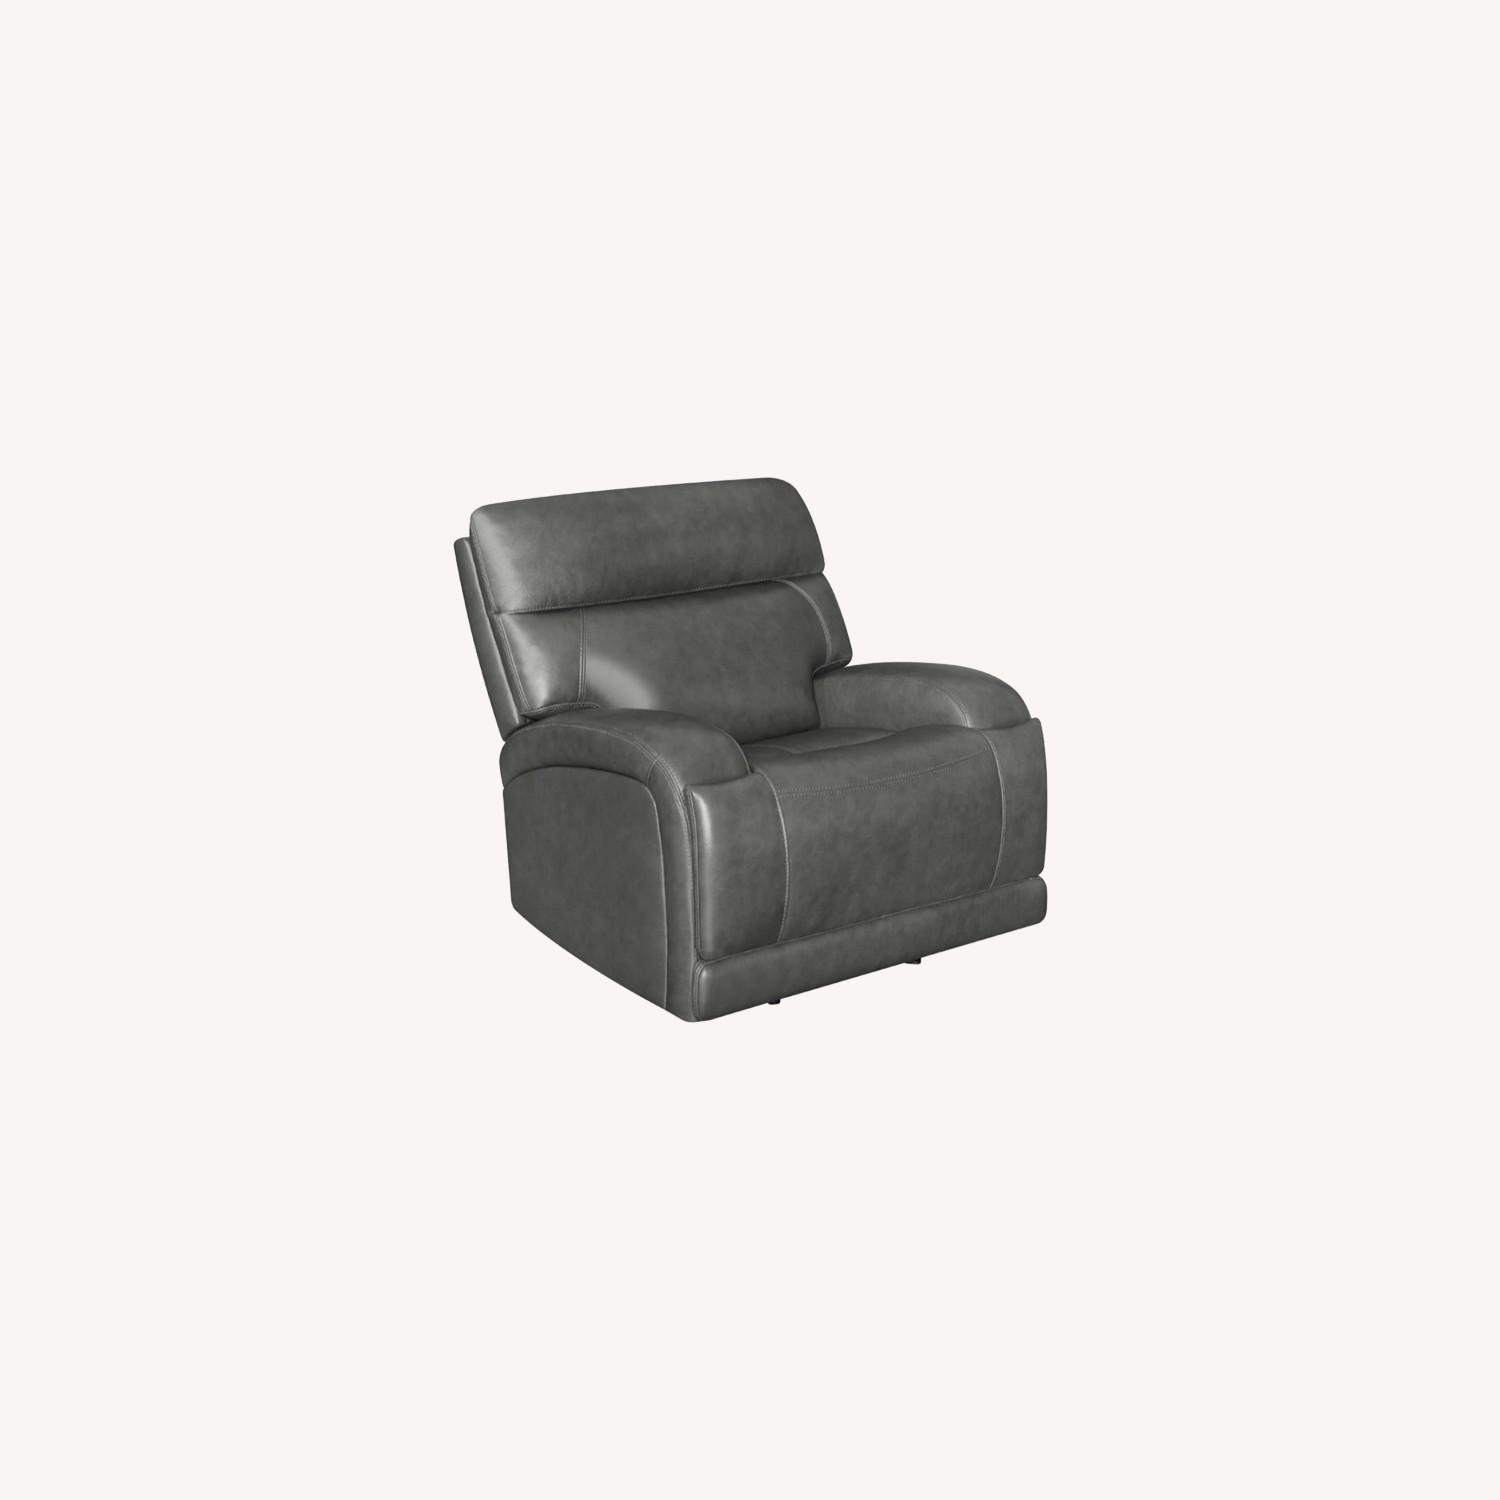 Power Recliner Chair In Charcoal Leatherette - image-9